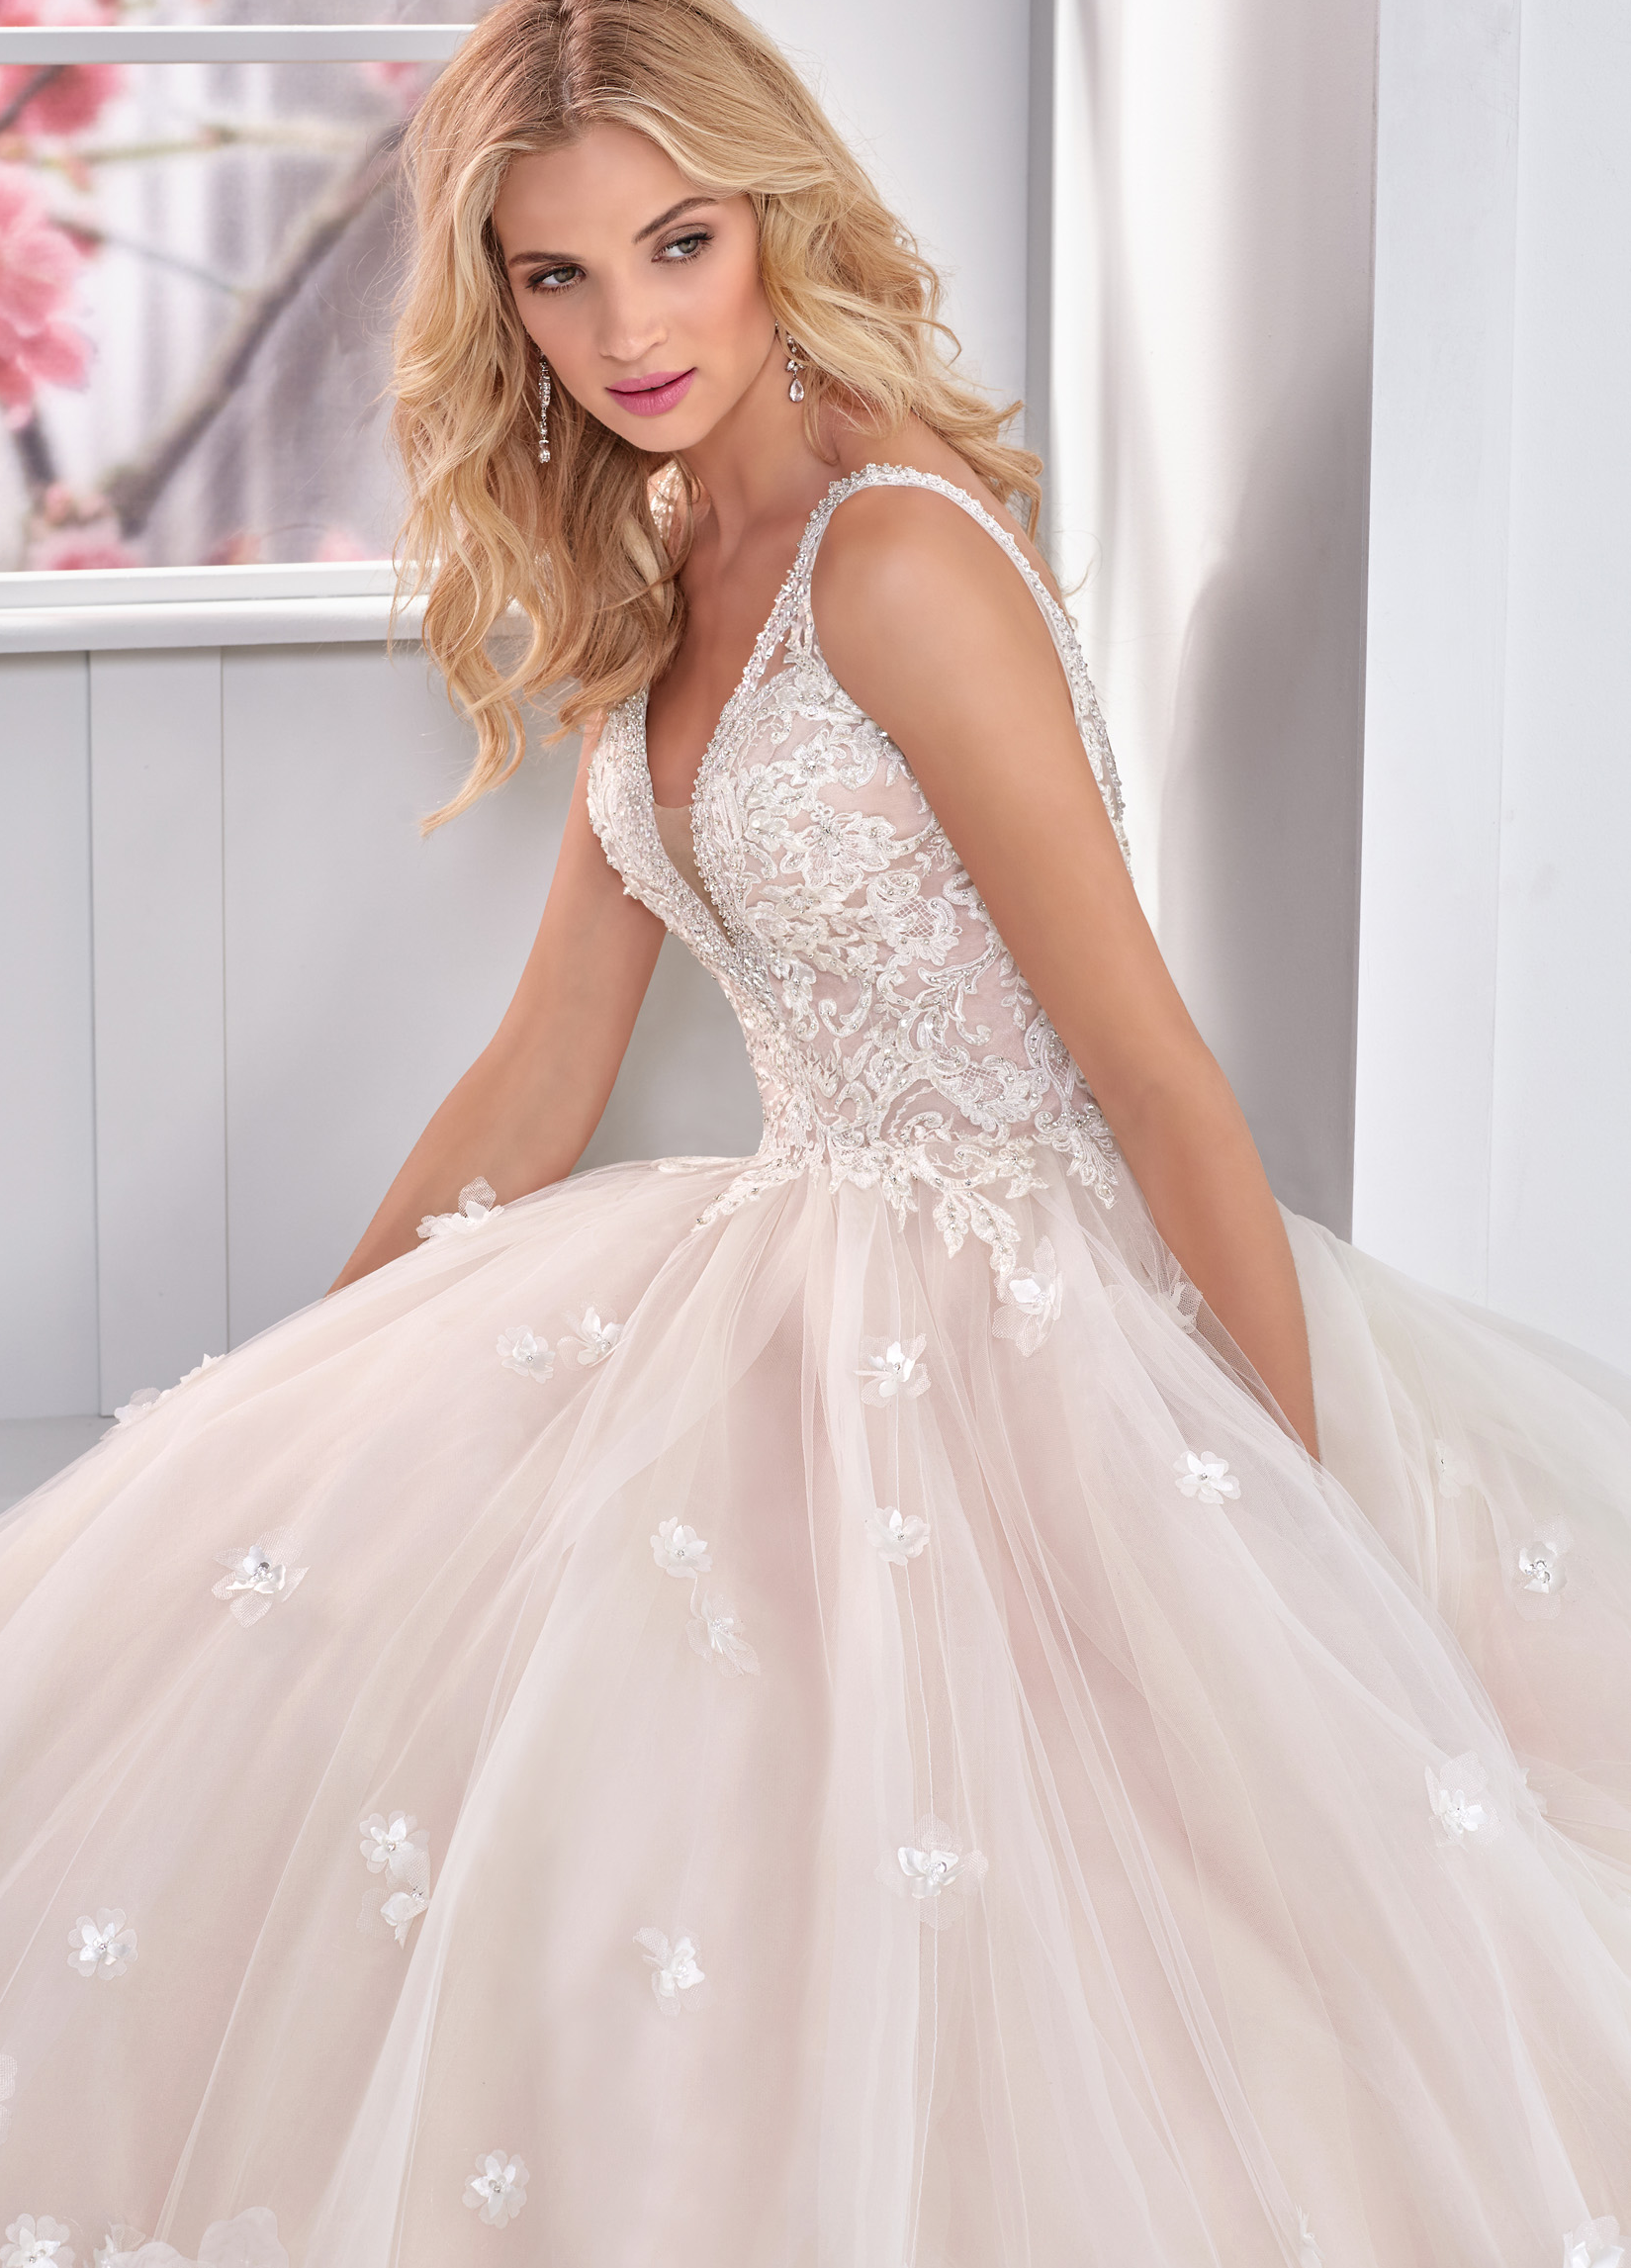 Christina K Bridal Boutique new collection by Ronald joyce ...